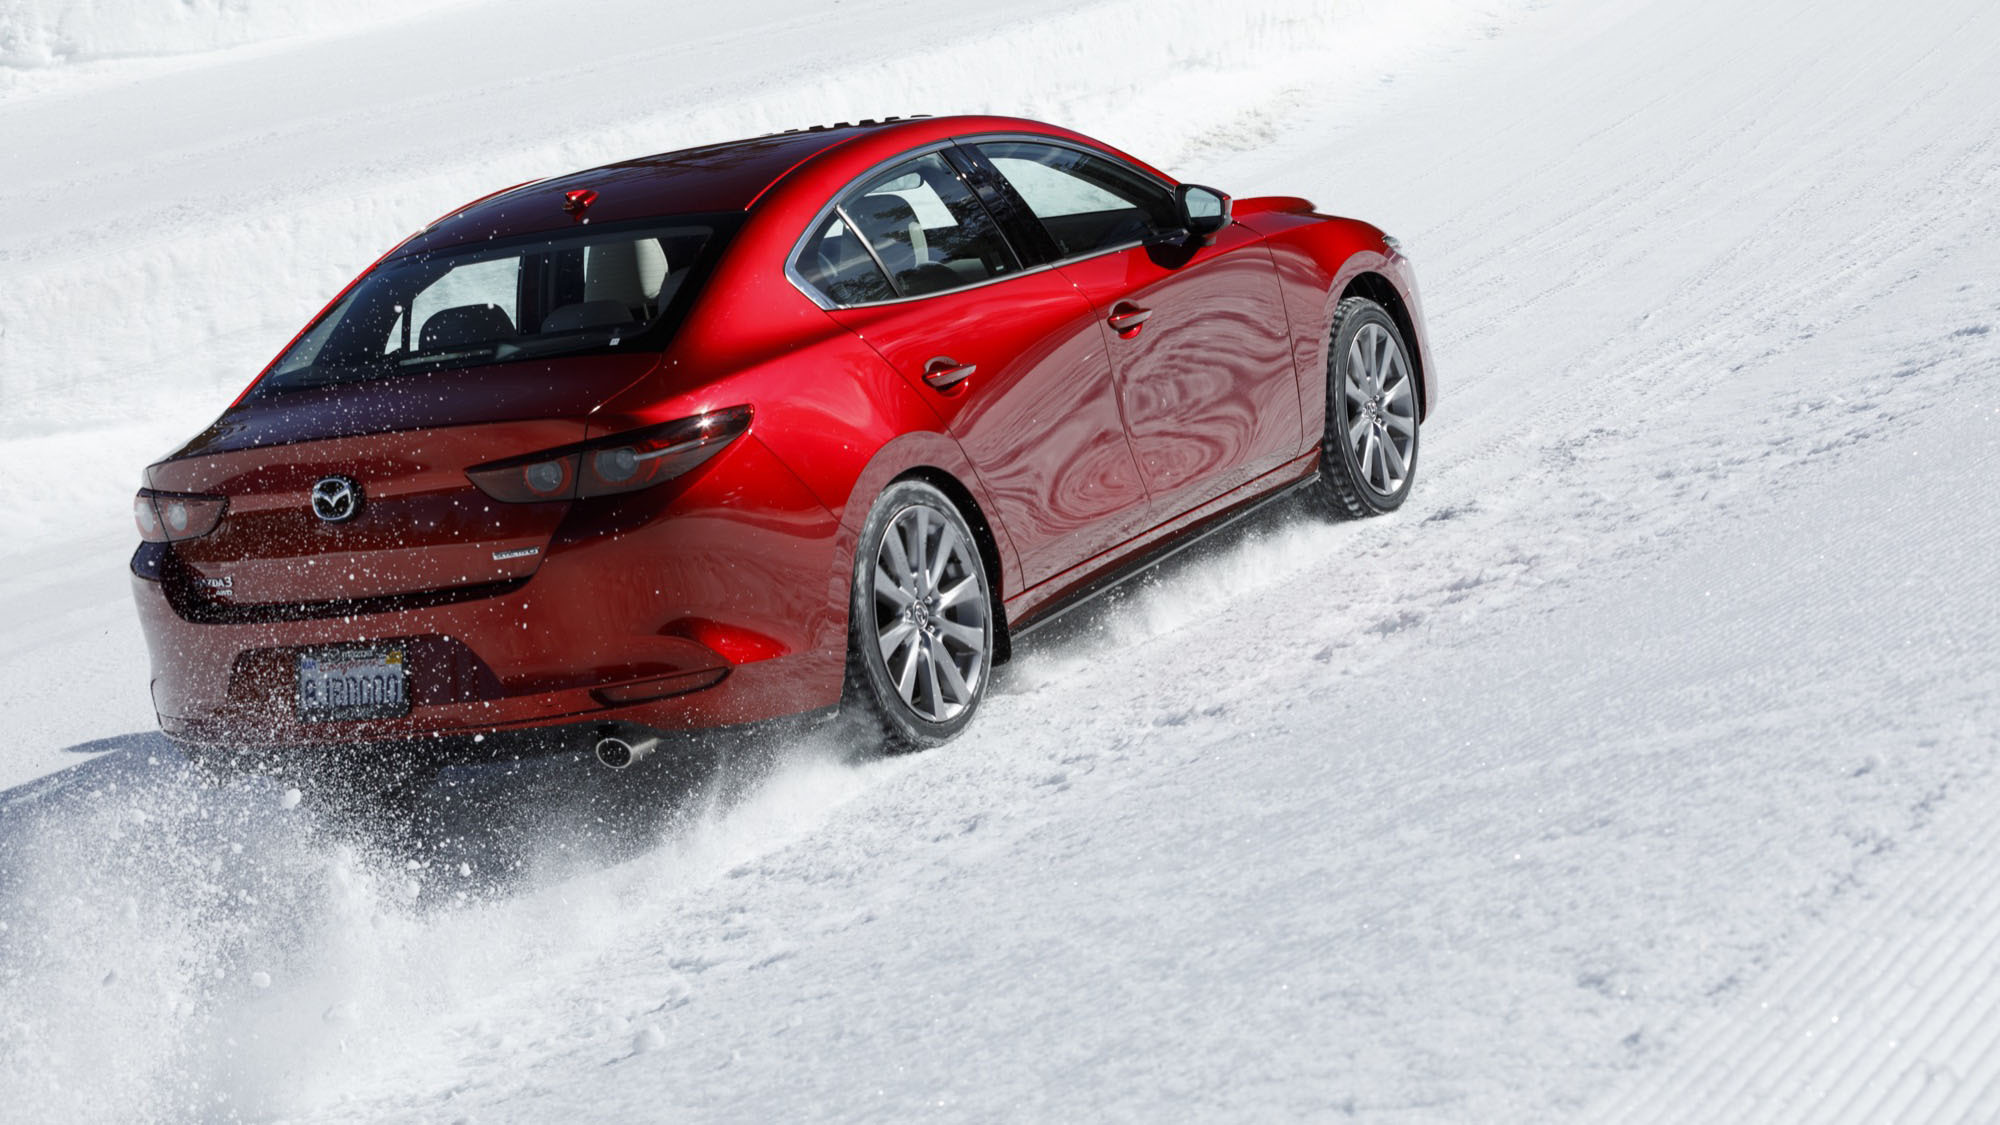 2019 Mazda3 Sedan And Hatchback All Wheel Drive Review And Specs Autoblog